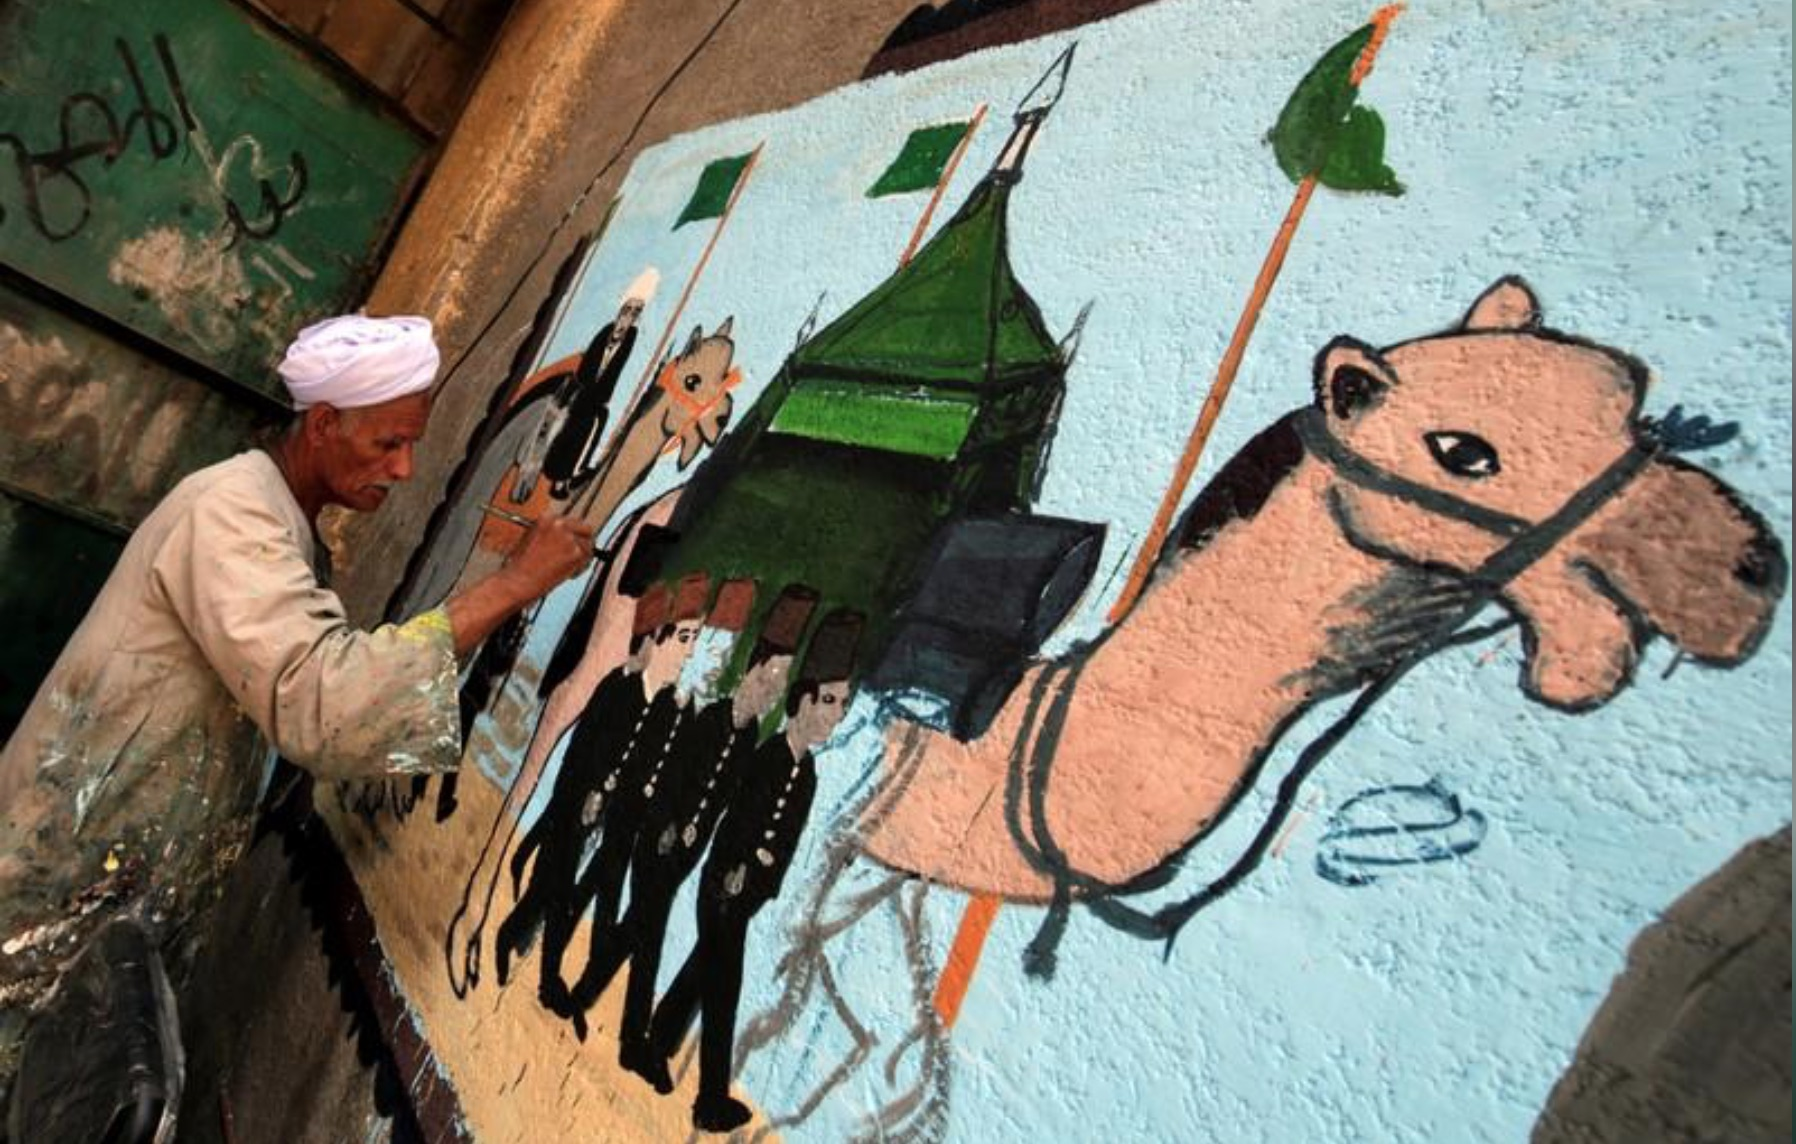 Egyptian artist paints murals on houses to celebrate haj